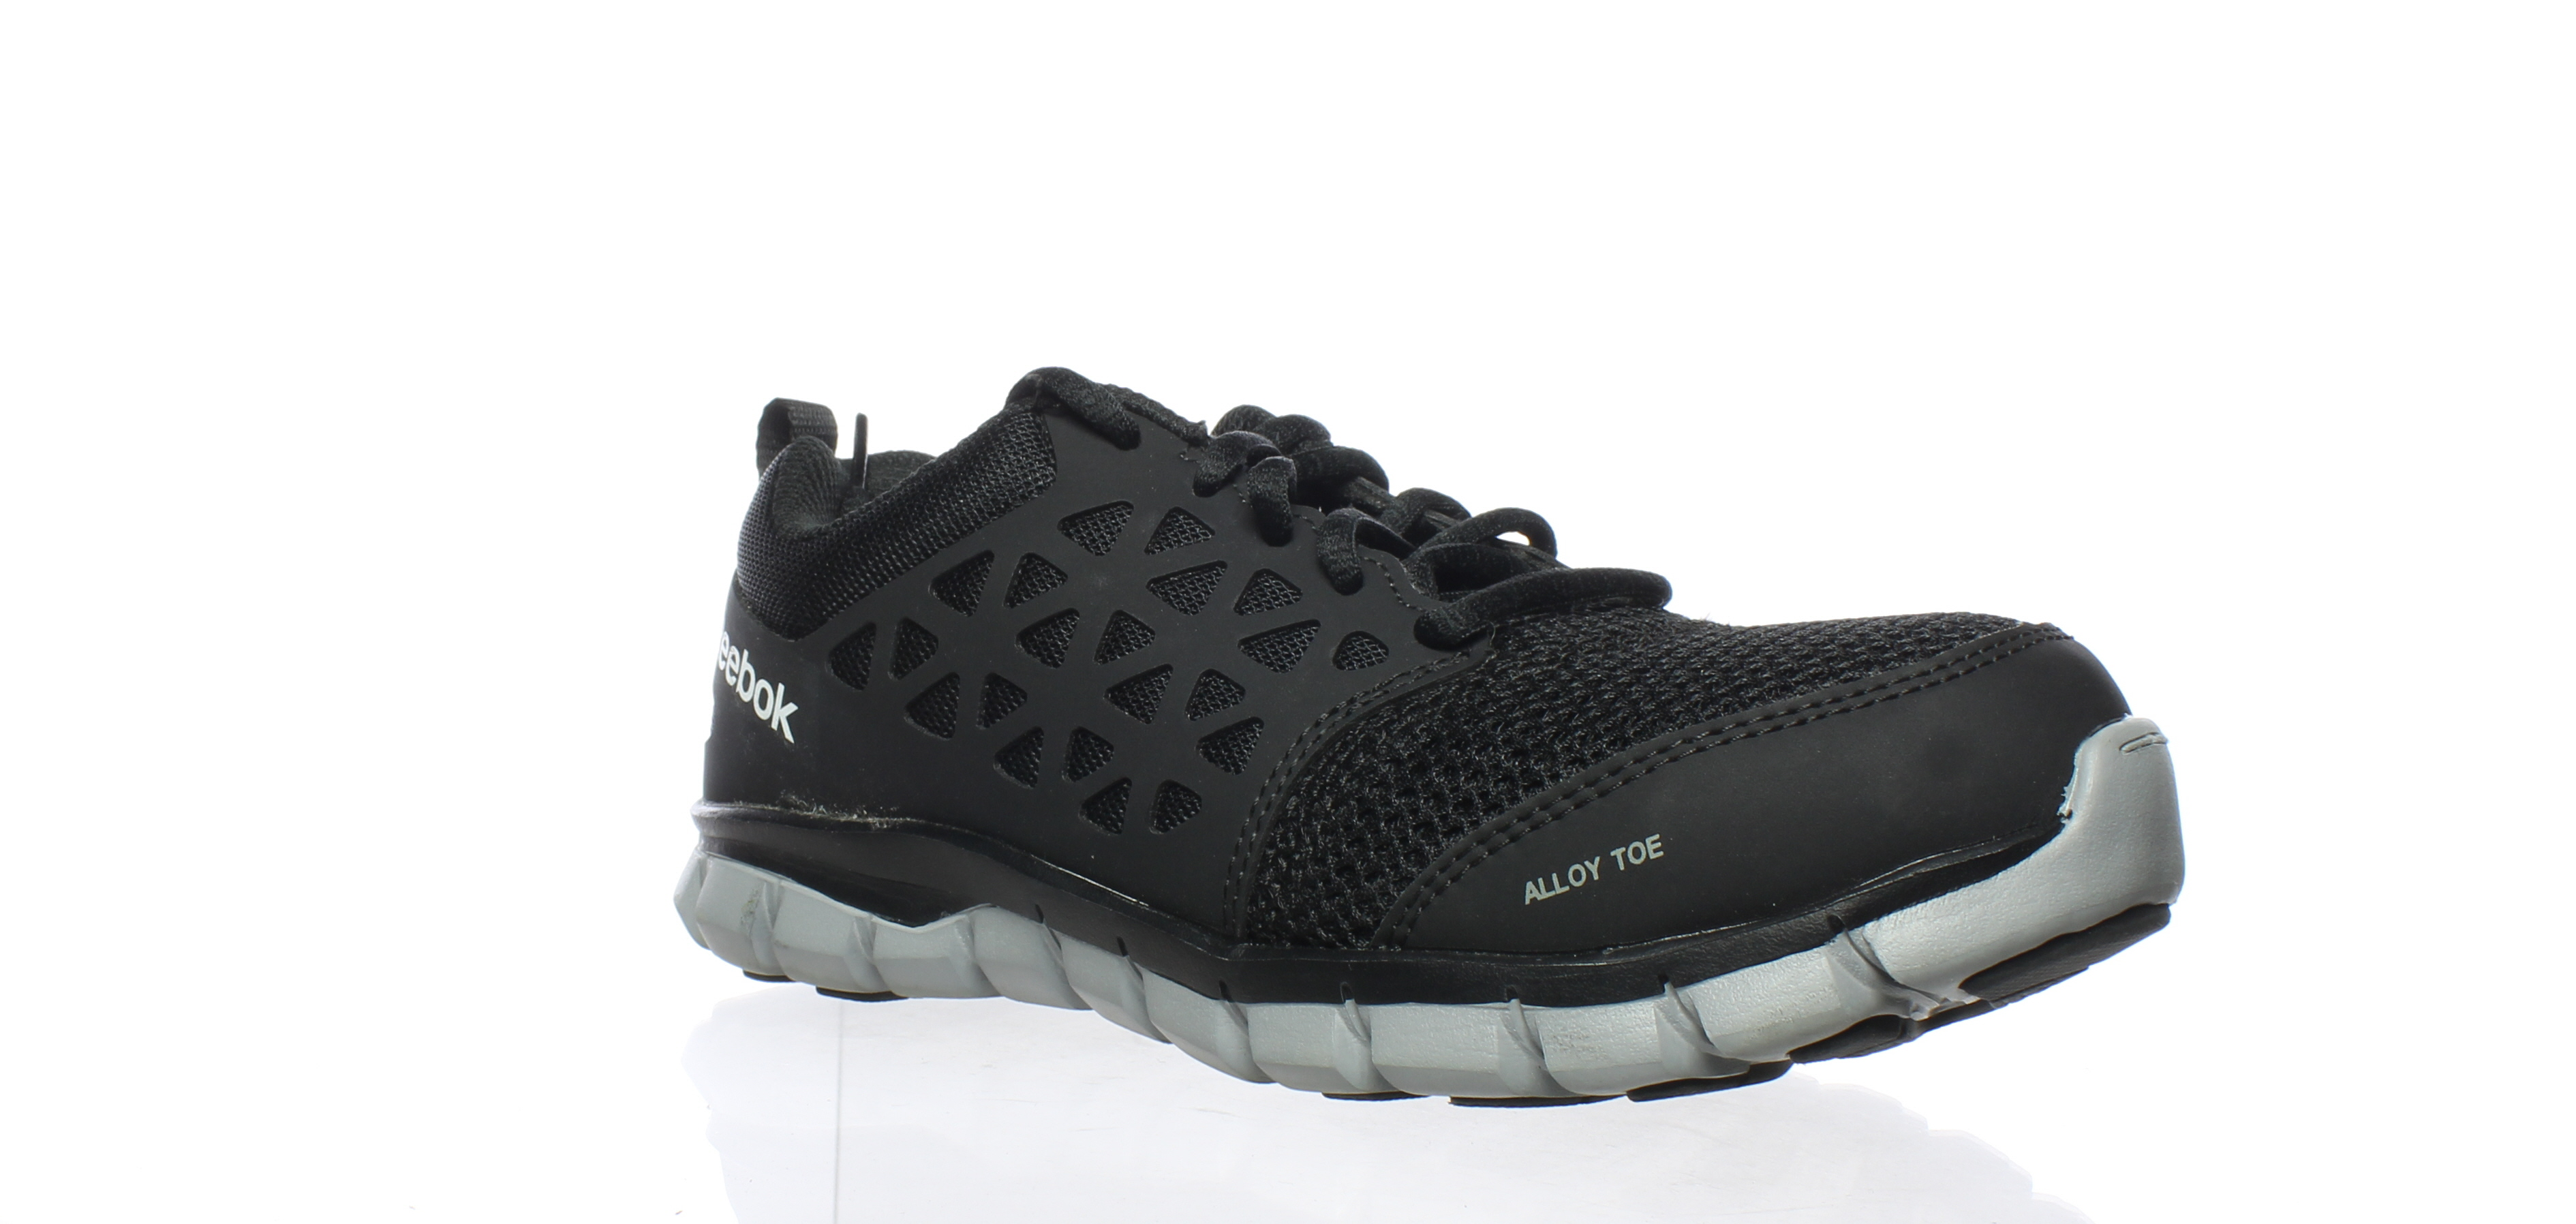 b7f435e83ca7 Details about Reebok Womens Sublite Cushion Work Black Safety Shoes Size  6.5 (187461)